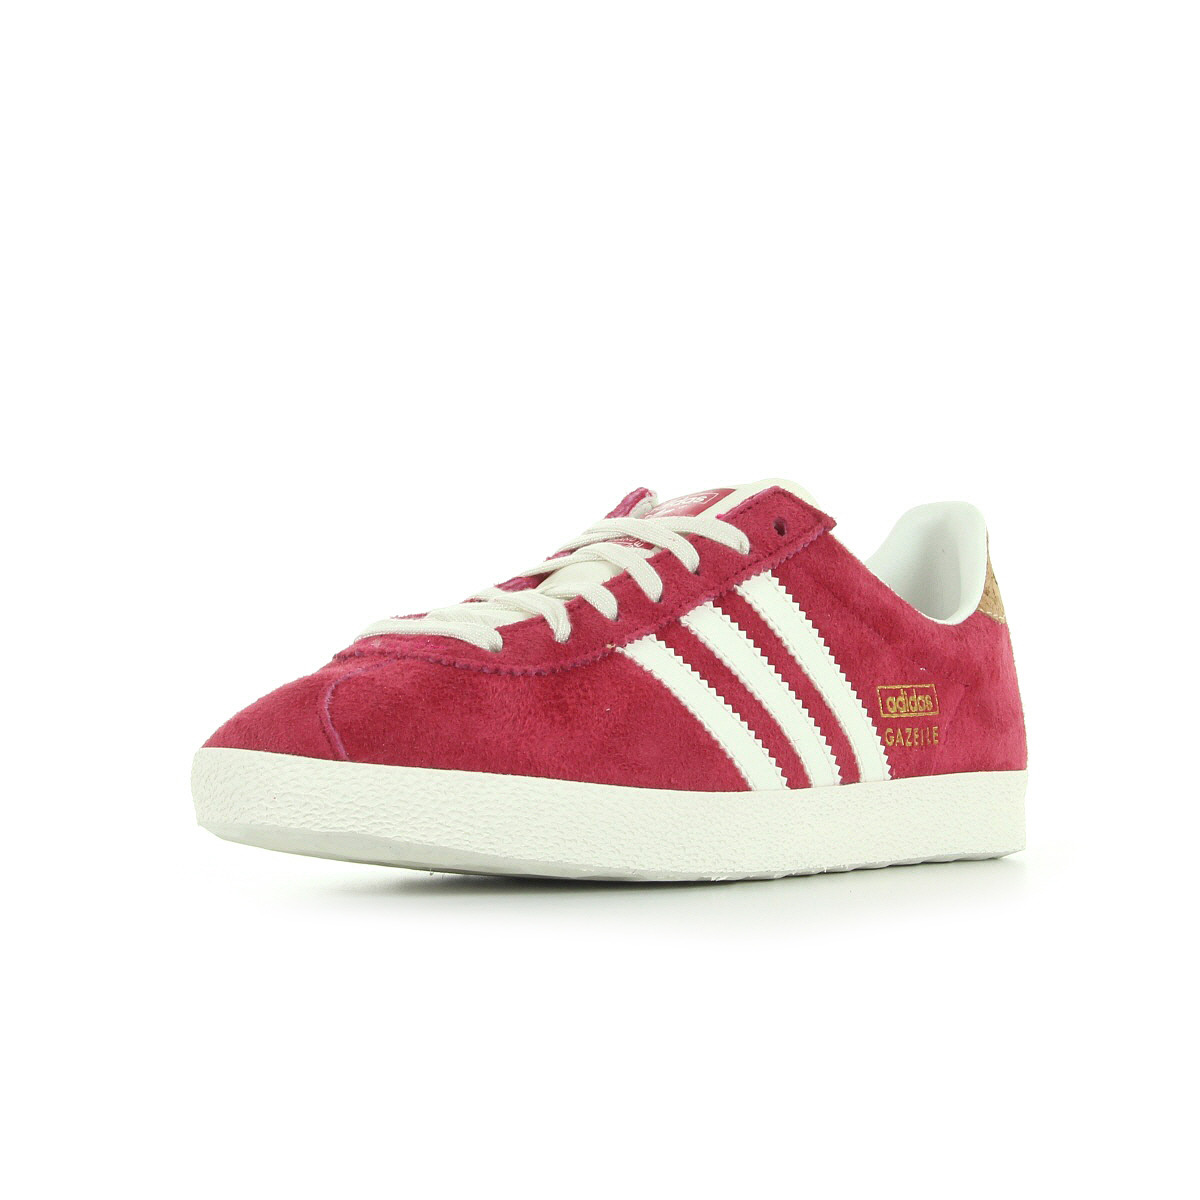 chaussures baskets adidas femme gazelle og w taille rose cuir lacets ebay. Black Bedroom Furniture Sets. Home Design Ideas